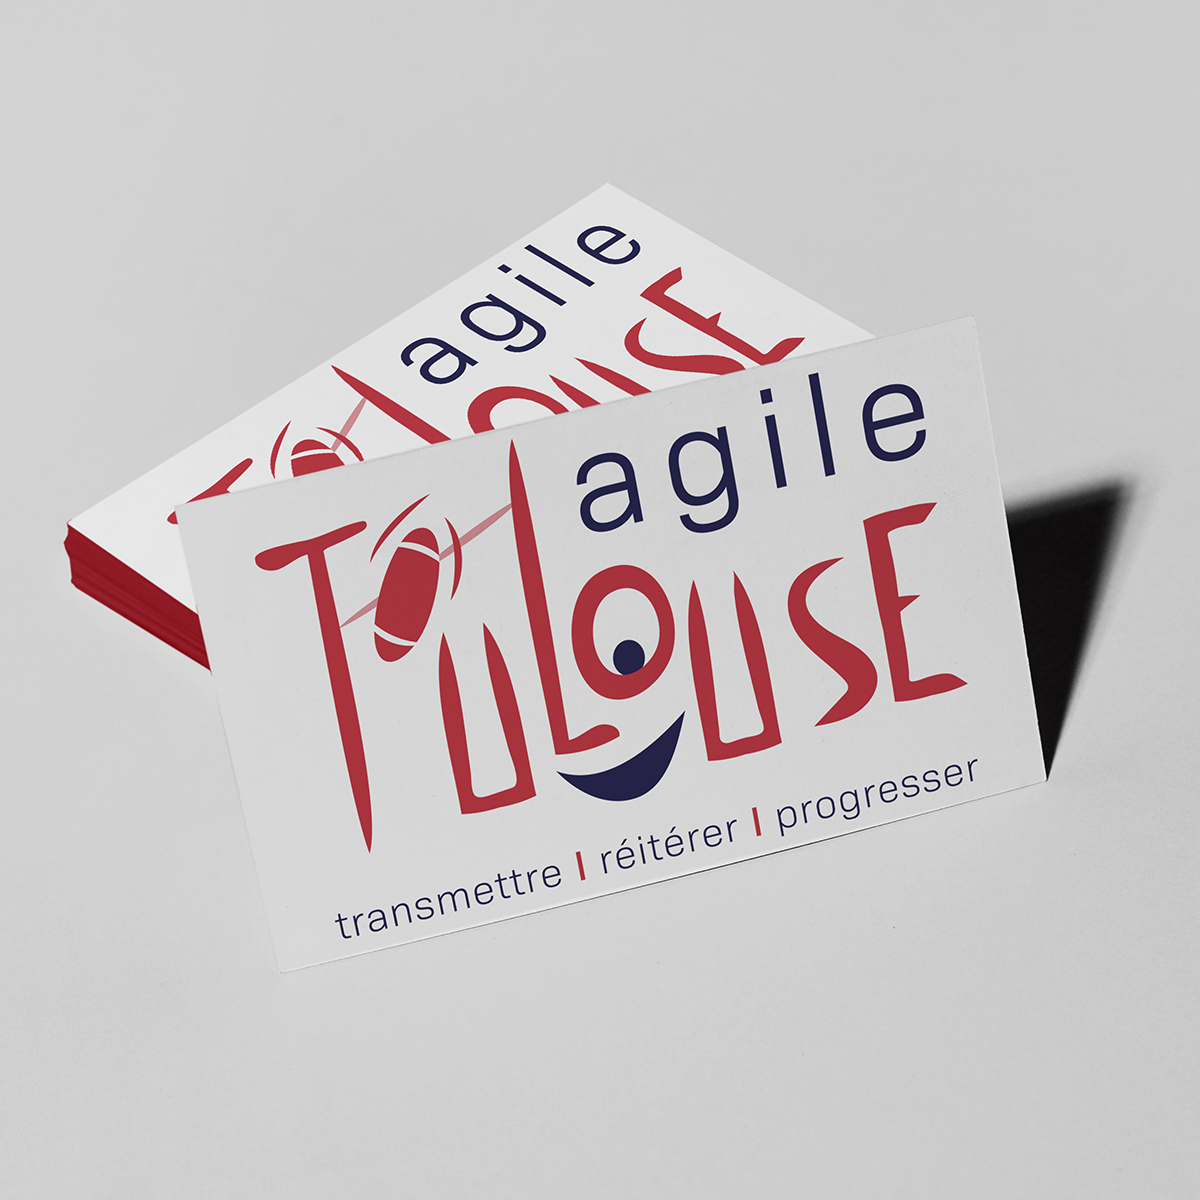 animation logo agile toulouse